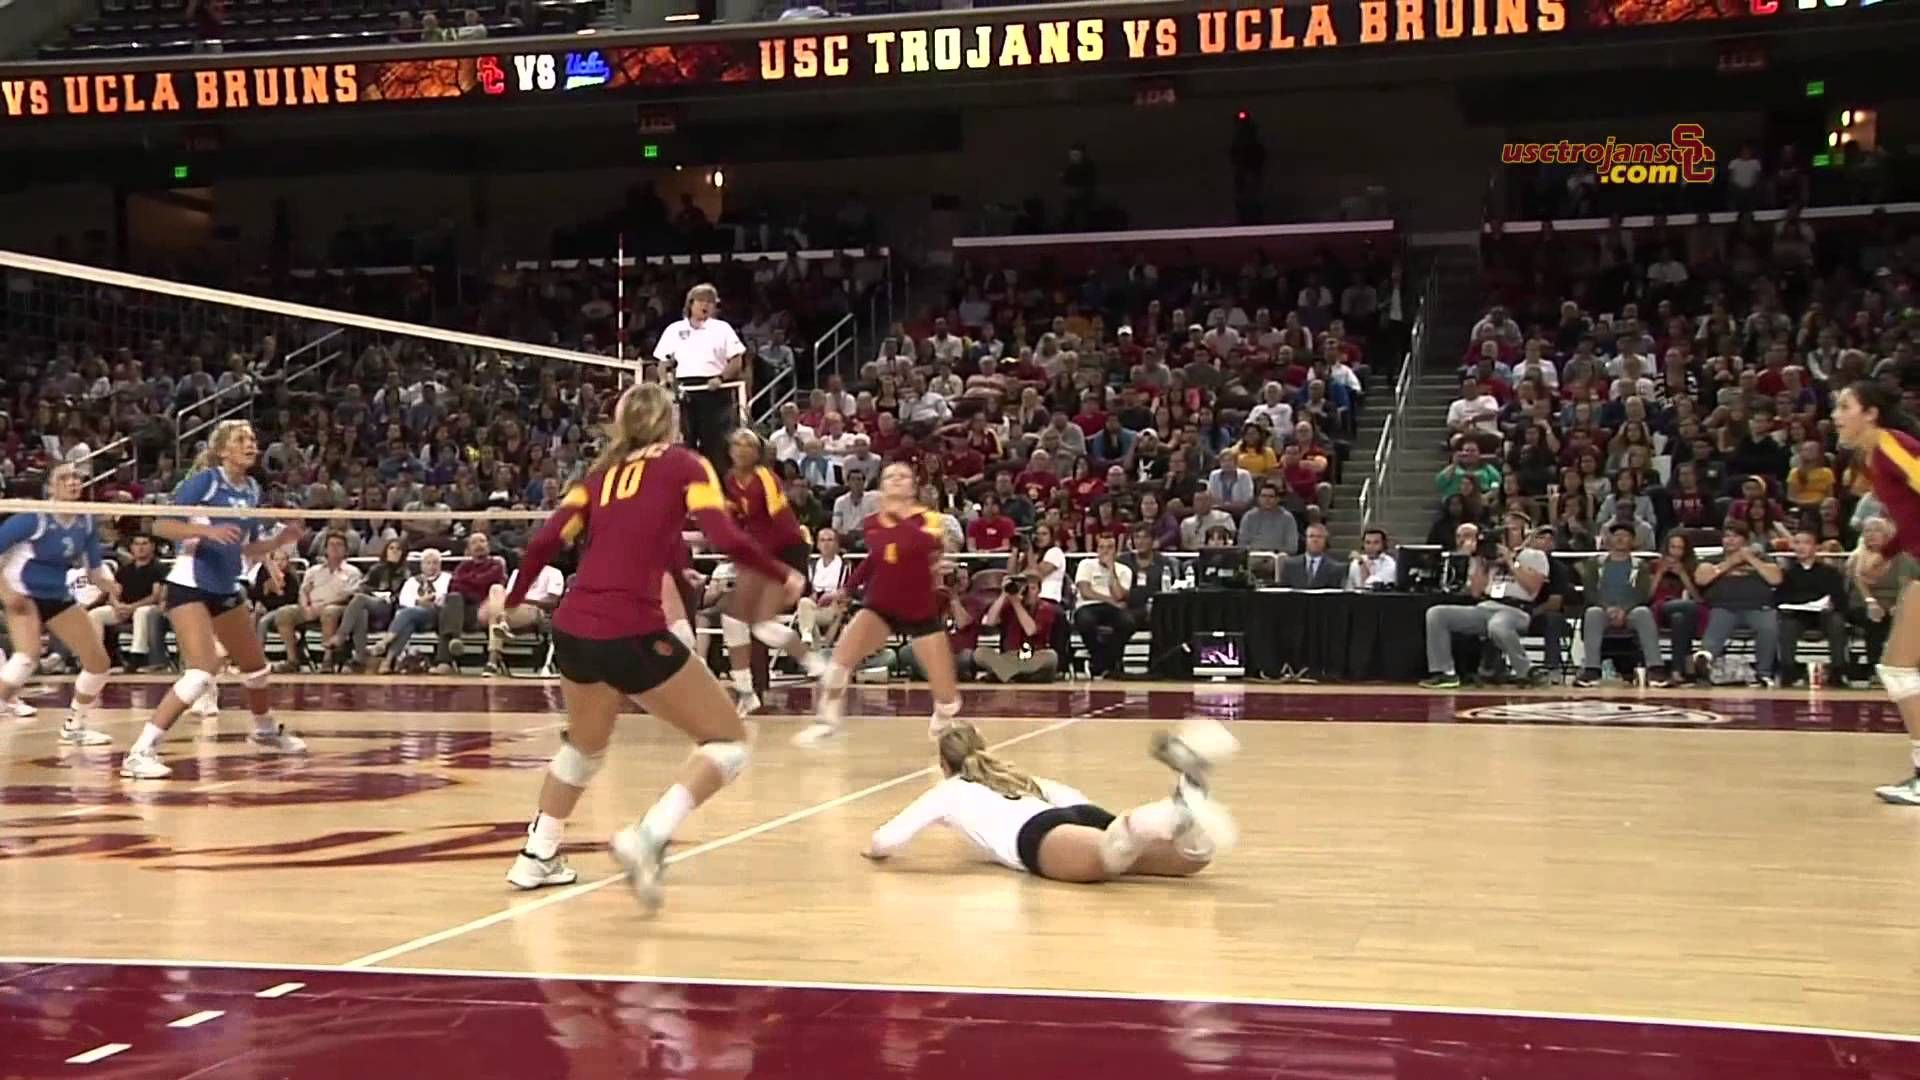 Usc Women S Volleyball 2013 Ncaa Regionals Women Volleyball Usc Usc Trojans